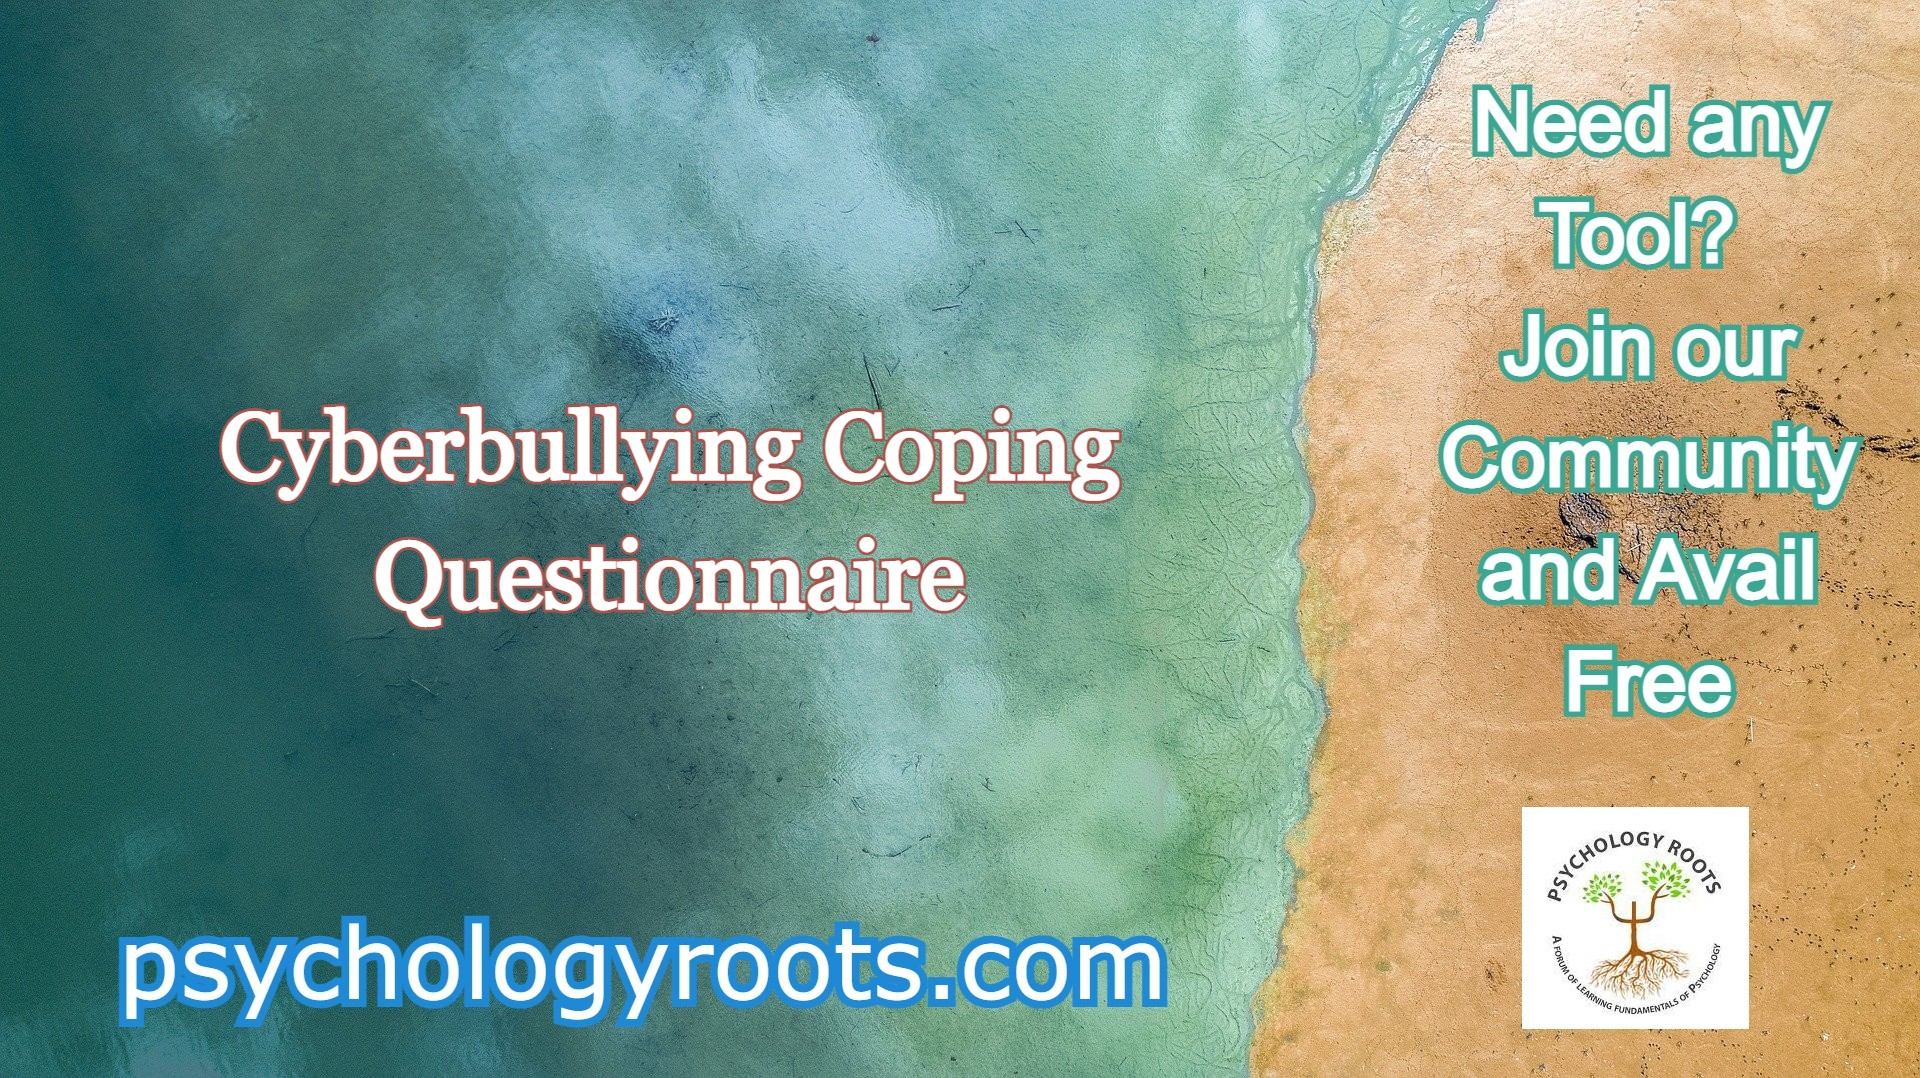 Cyberbullying Coping Questionnaire